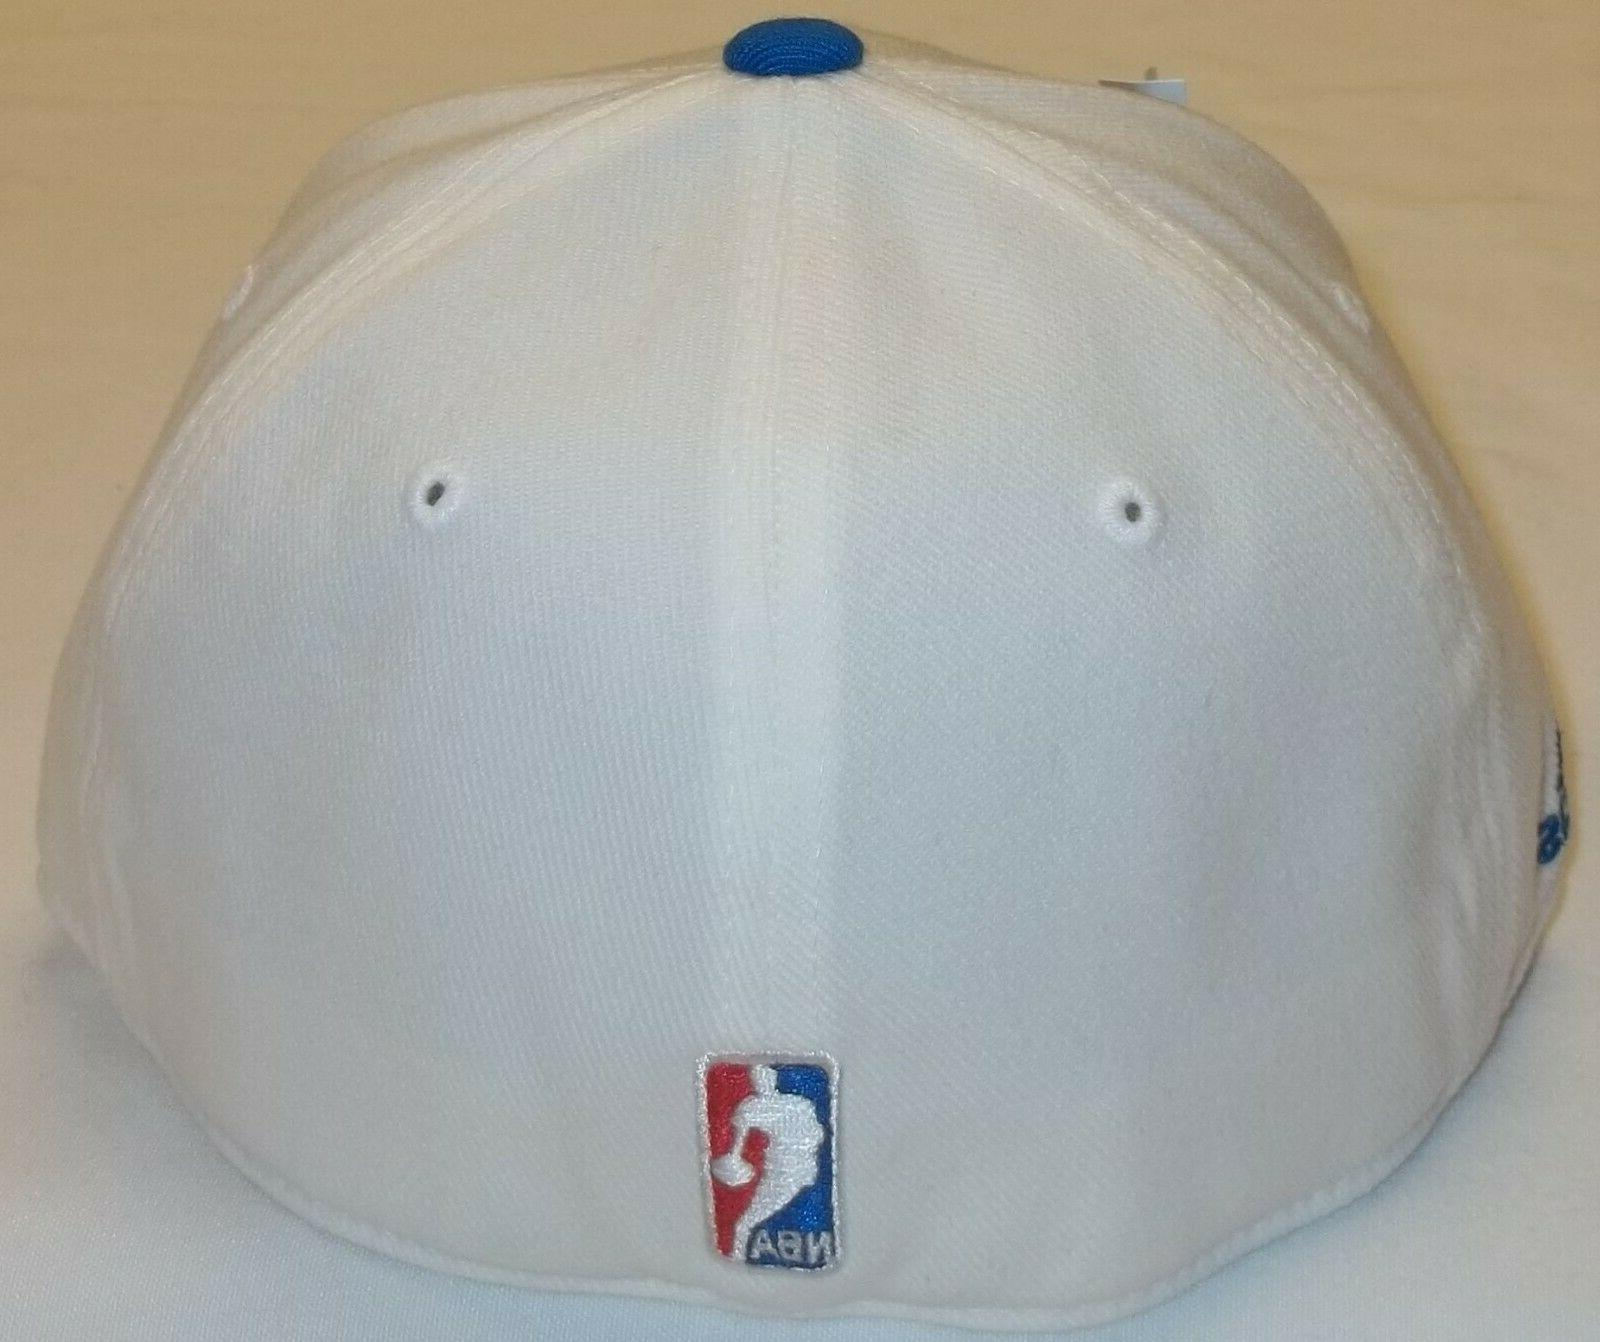 NBA Magic 2in1 Visor By Adidas Size - New